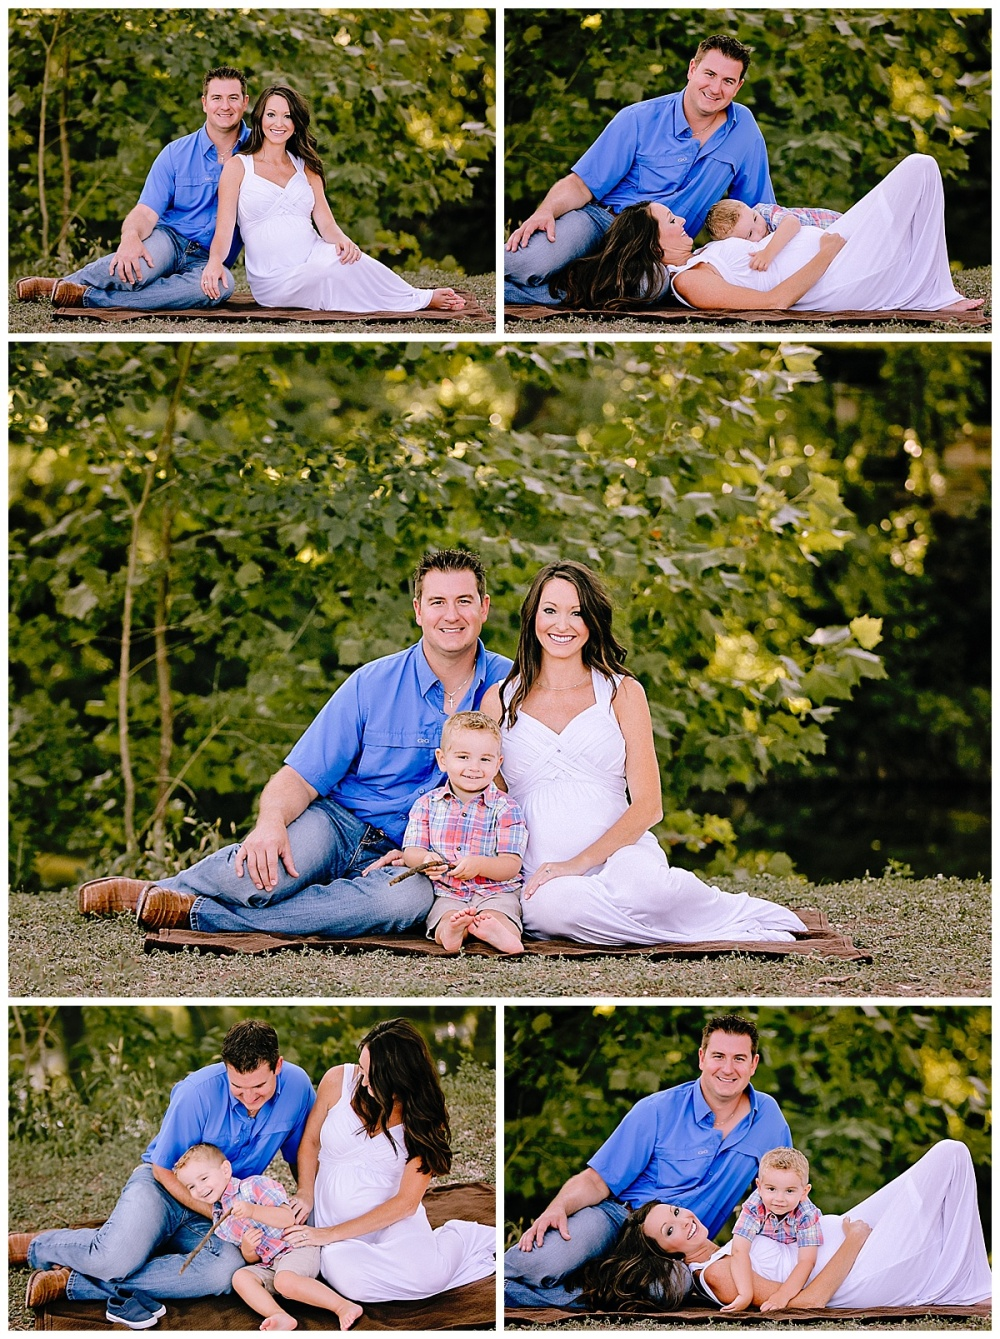 Carly-Barton-Photography-Maternity-Photos-Cypress-Bend-Park-New-Braunfels-Jonas-Family-Texas_0006.jpg